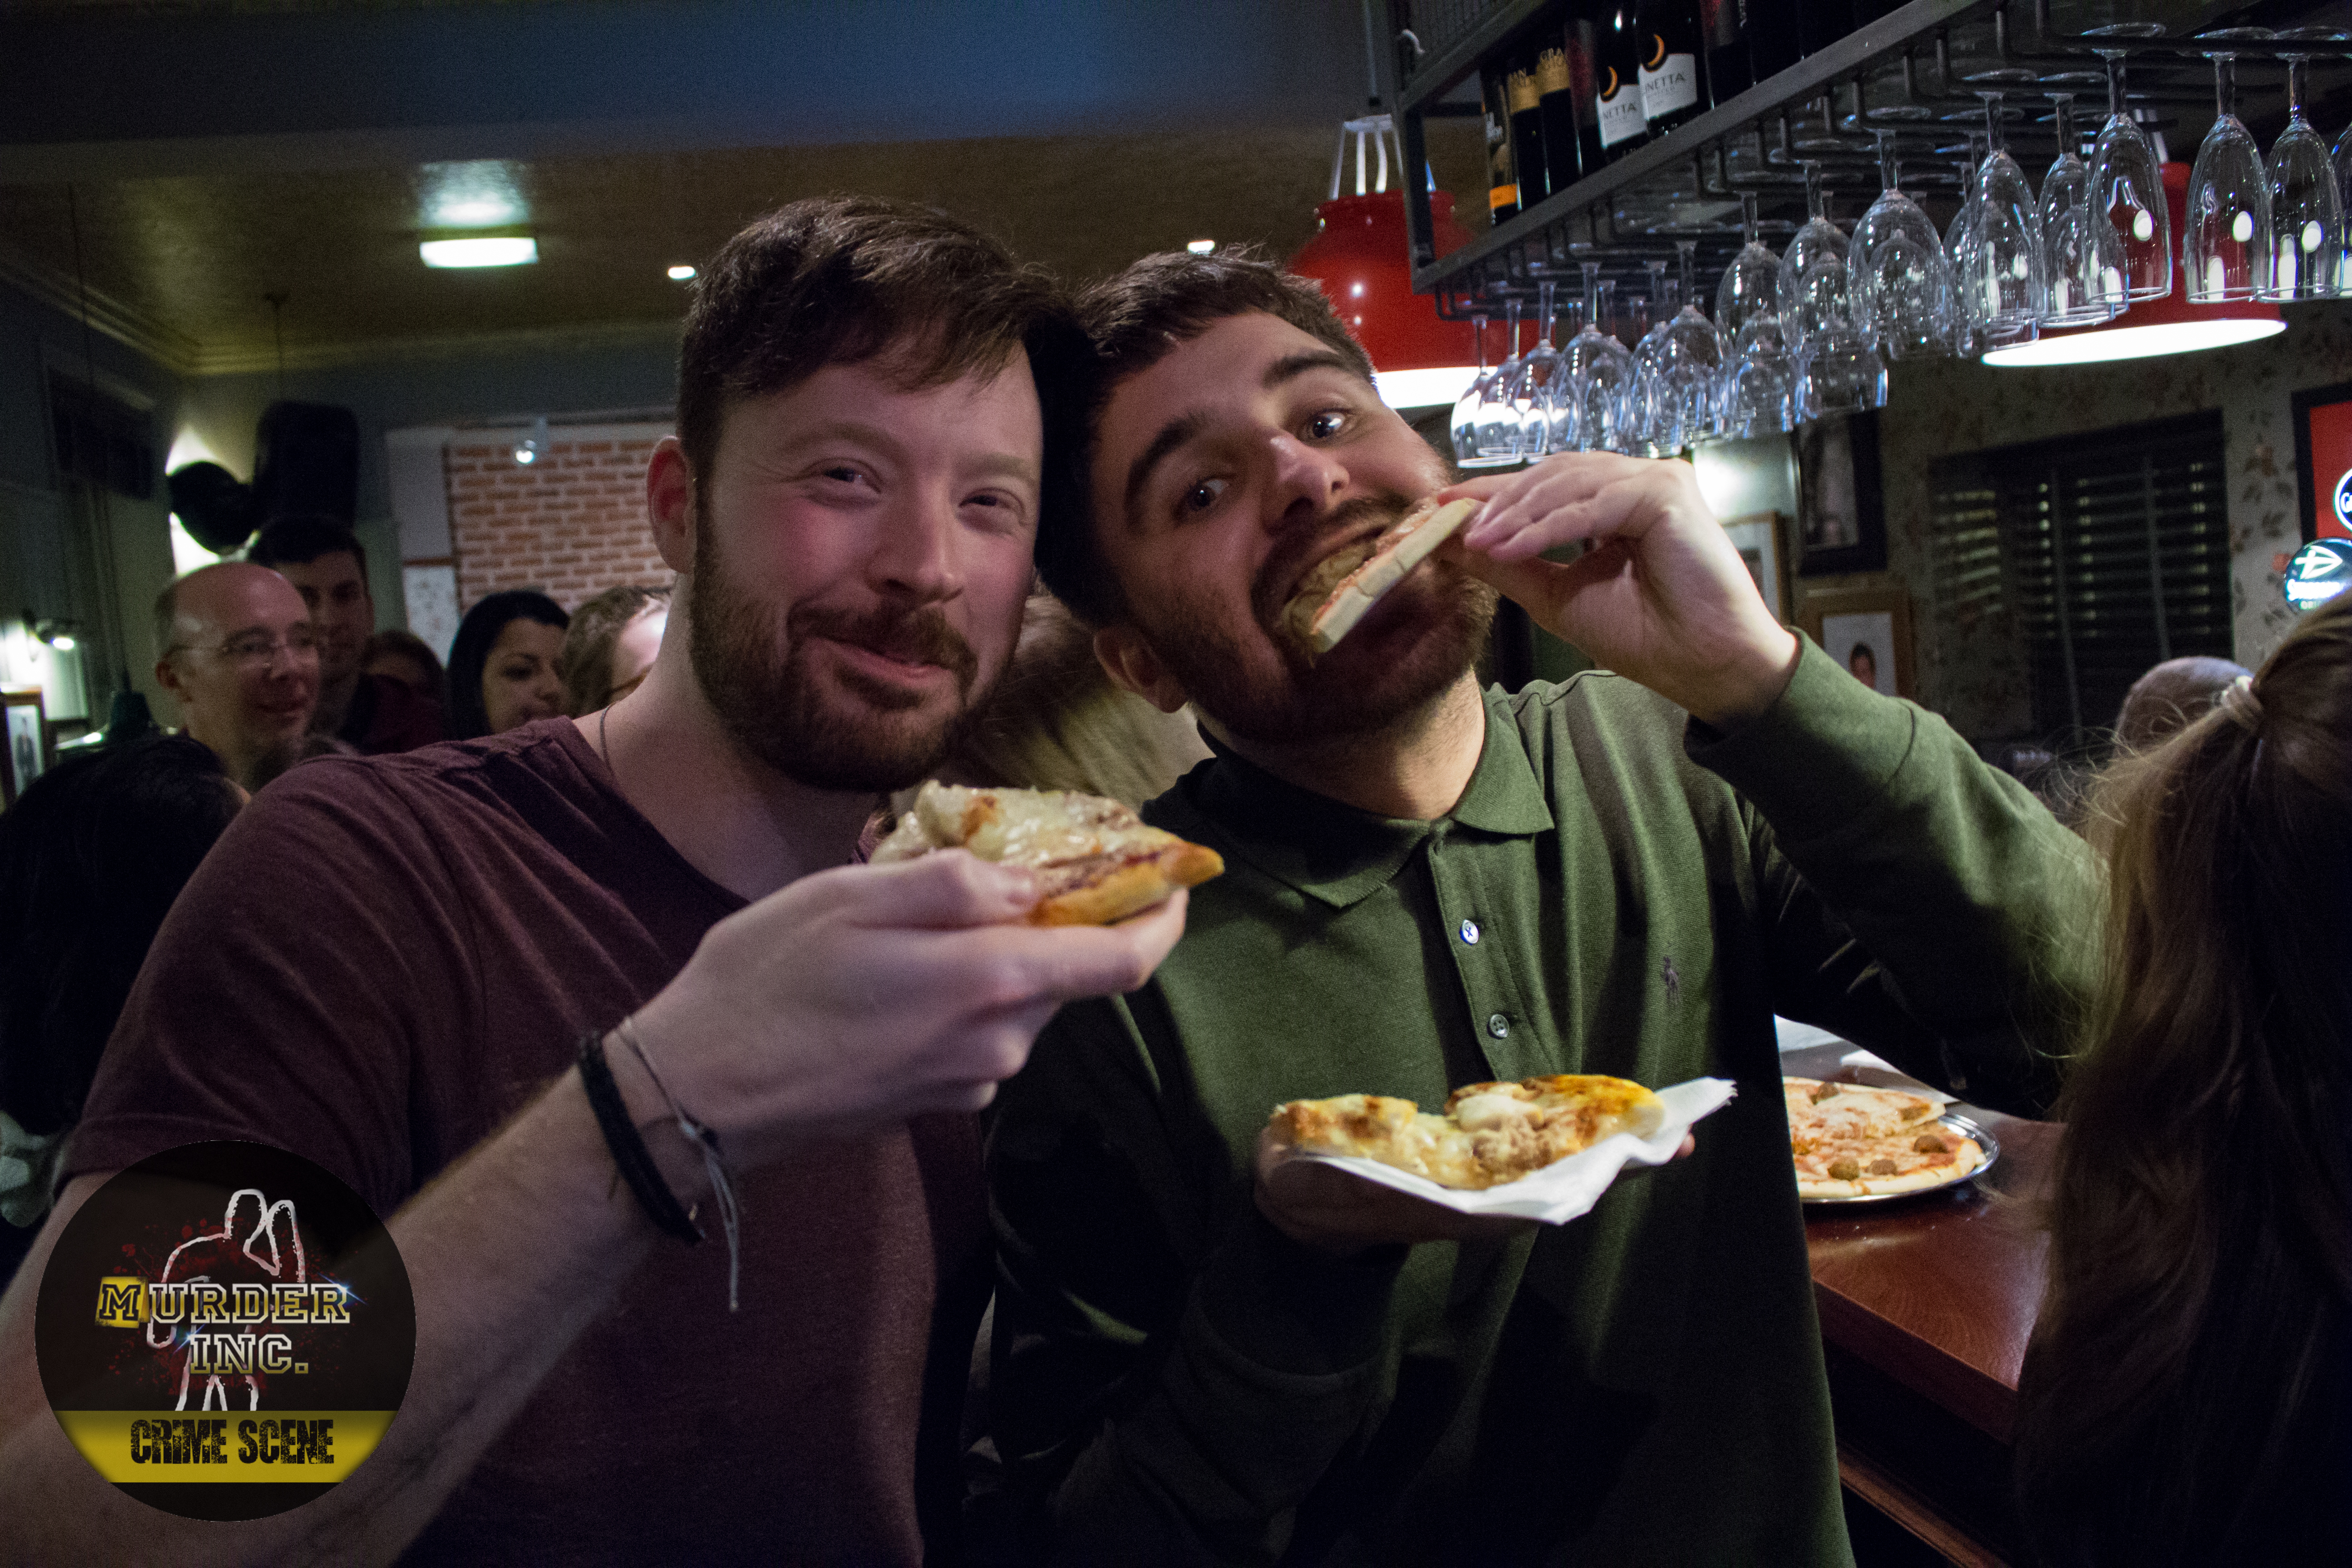 Two audience members enjoying pizza